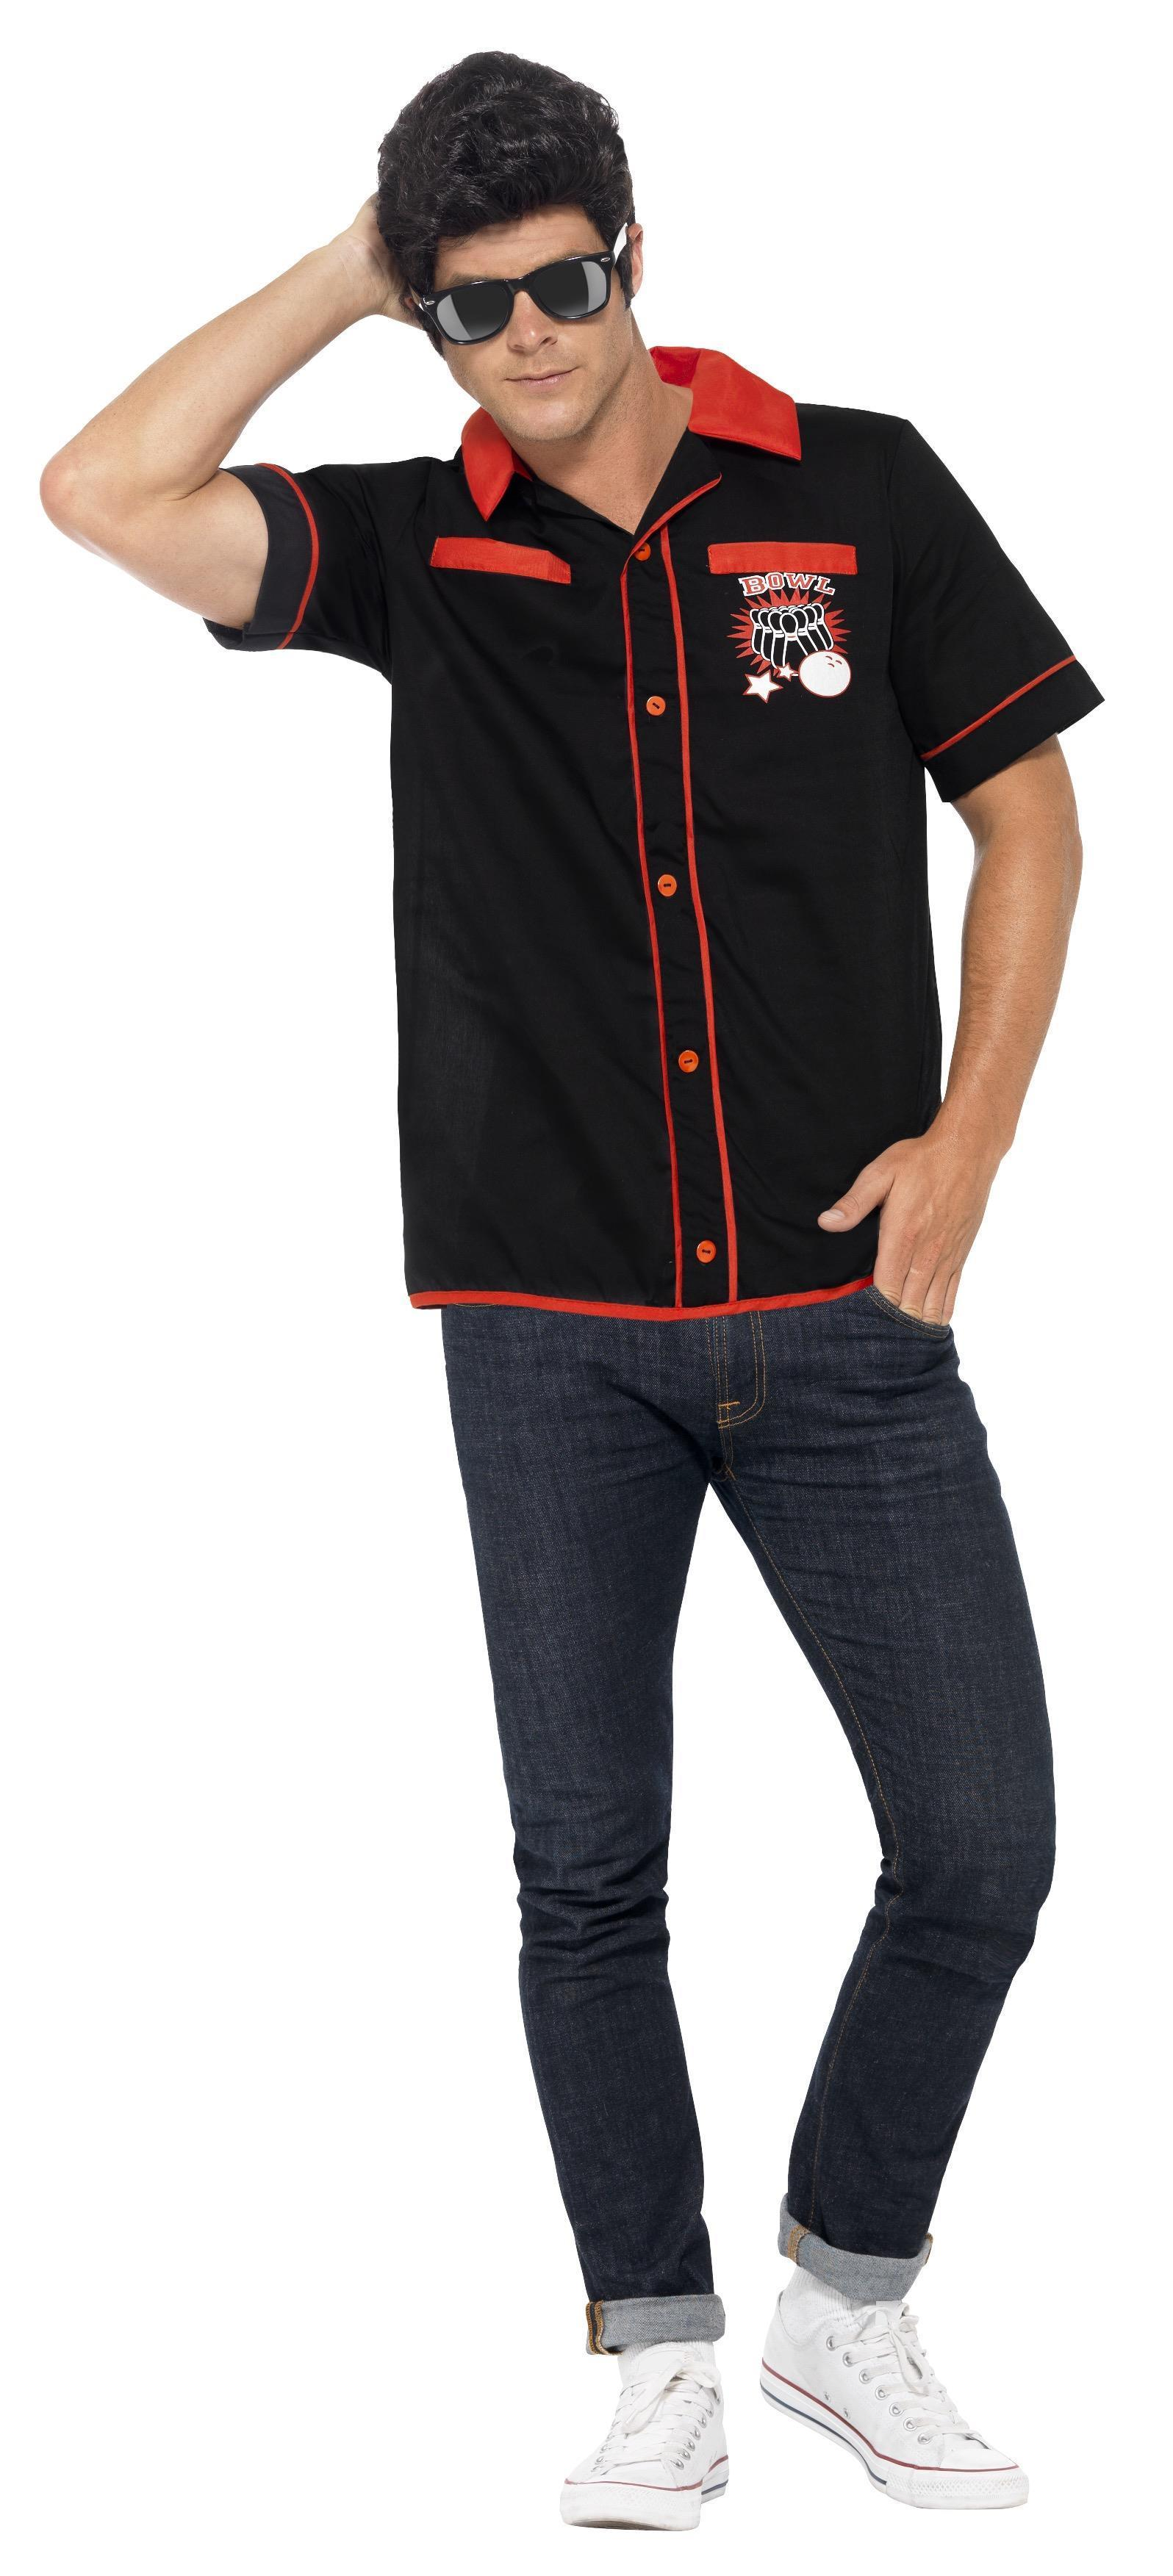 50s Bowling Shirt Black